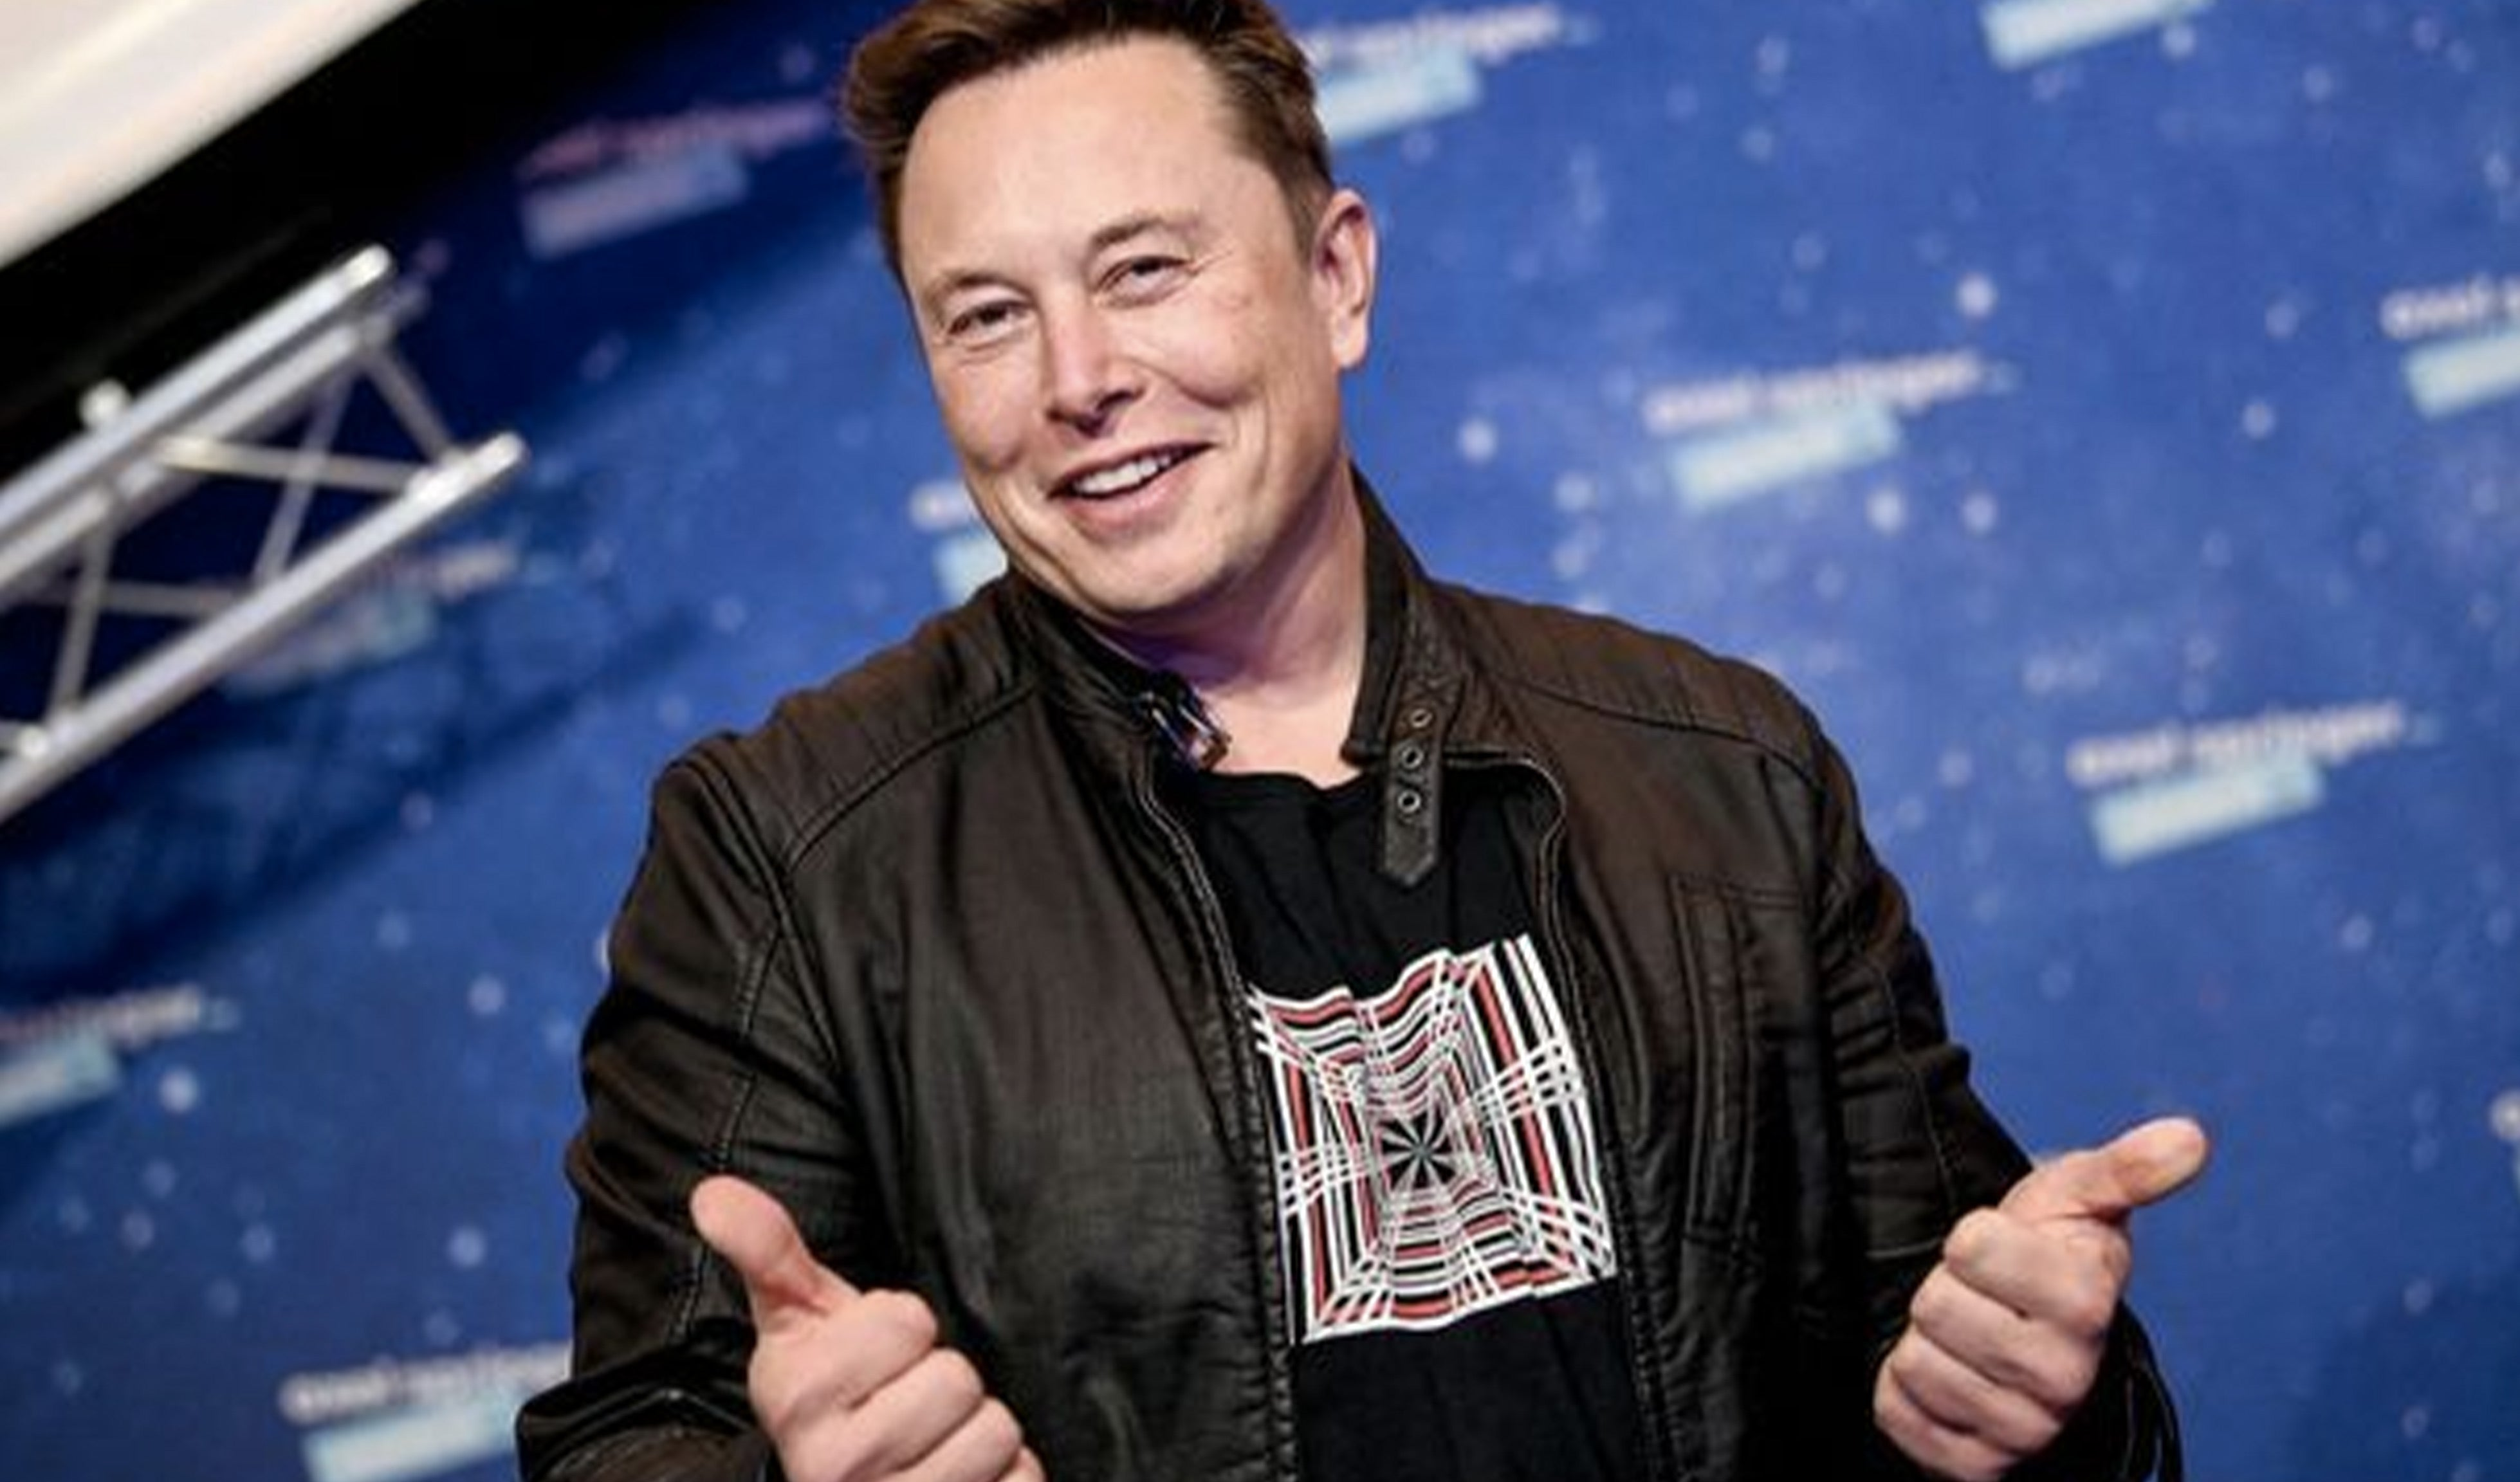 Elon Musk drops to third place in the list of the world's richest people: Jeff Bezos still tops the list